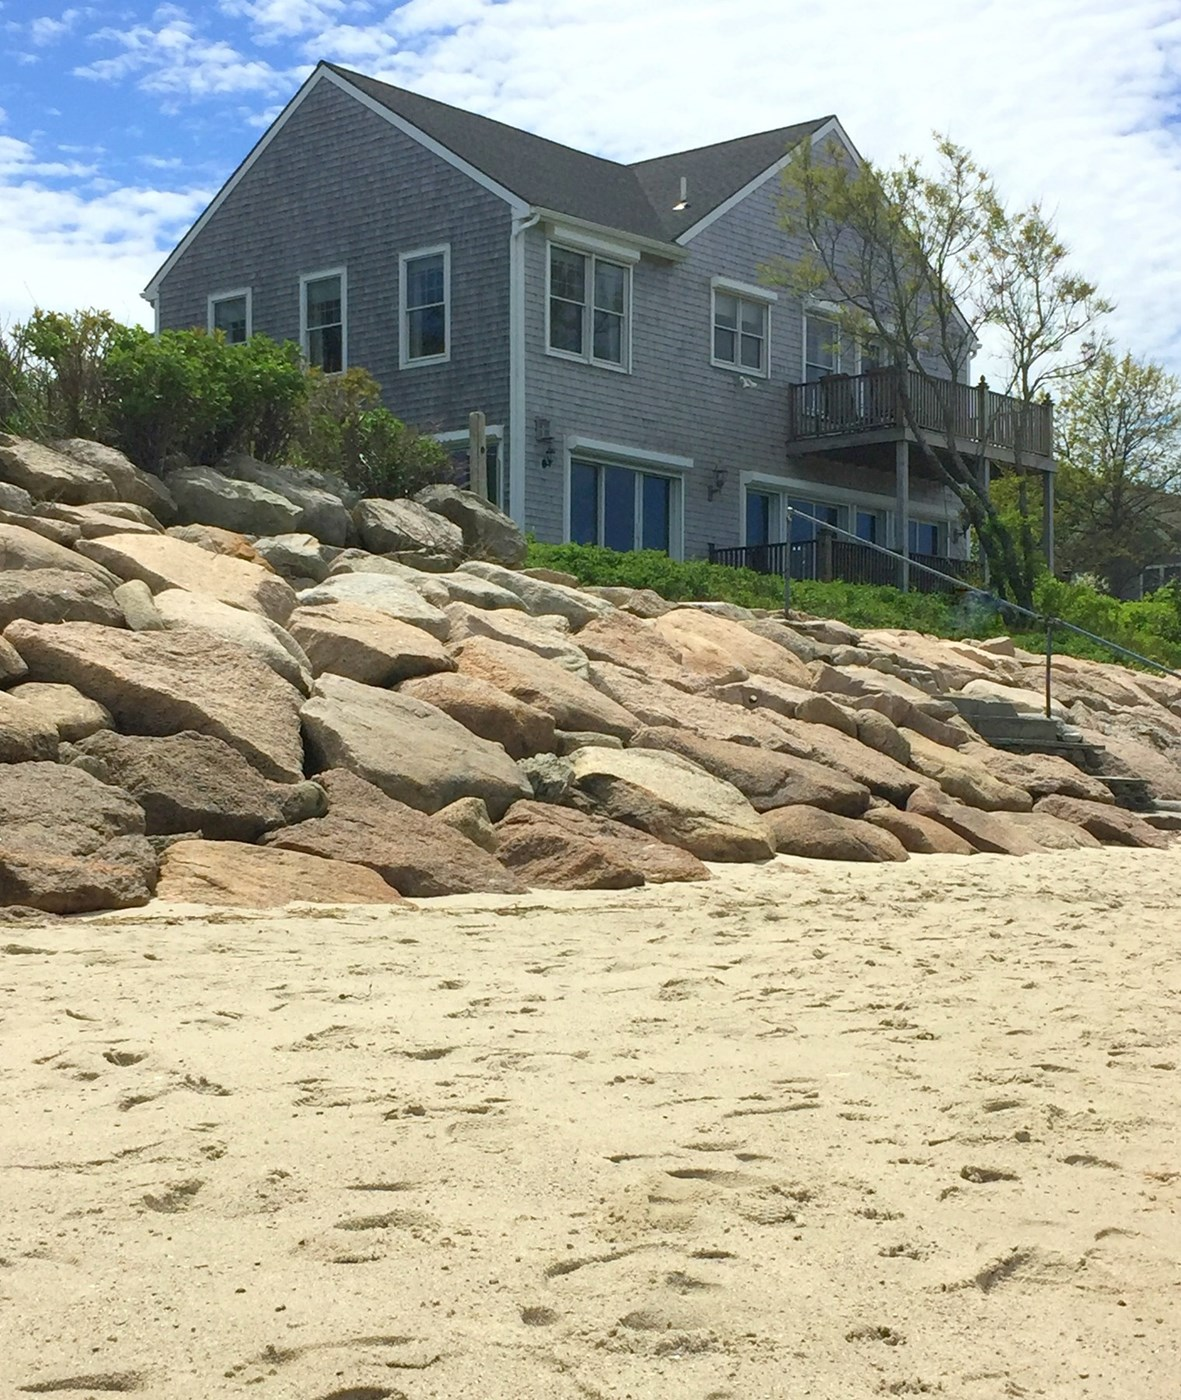 Barnstable Vacation Rental Home In Cape Cod MA 02630, 15